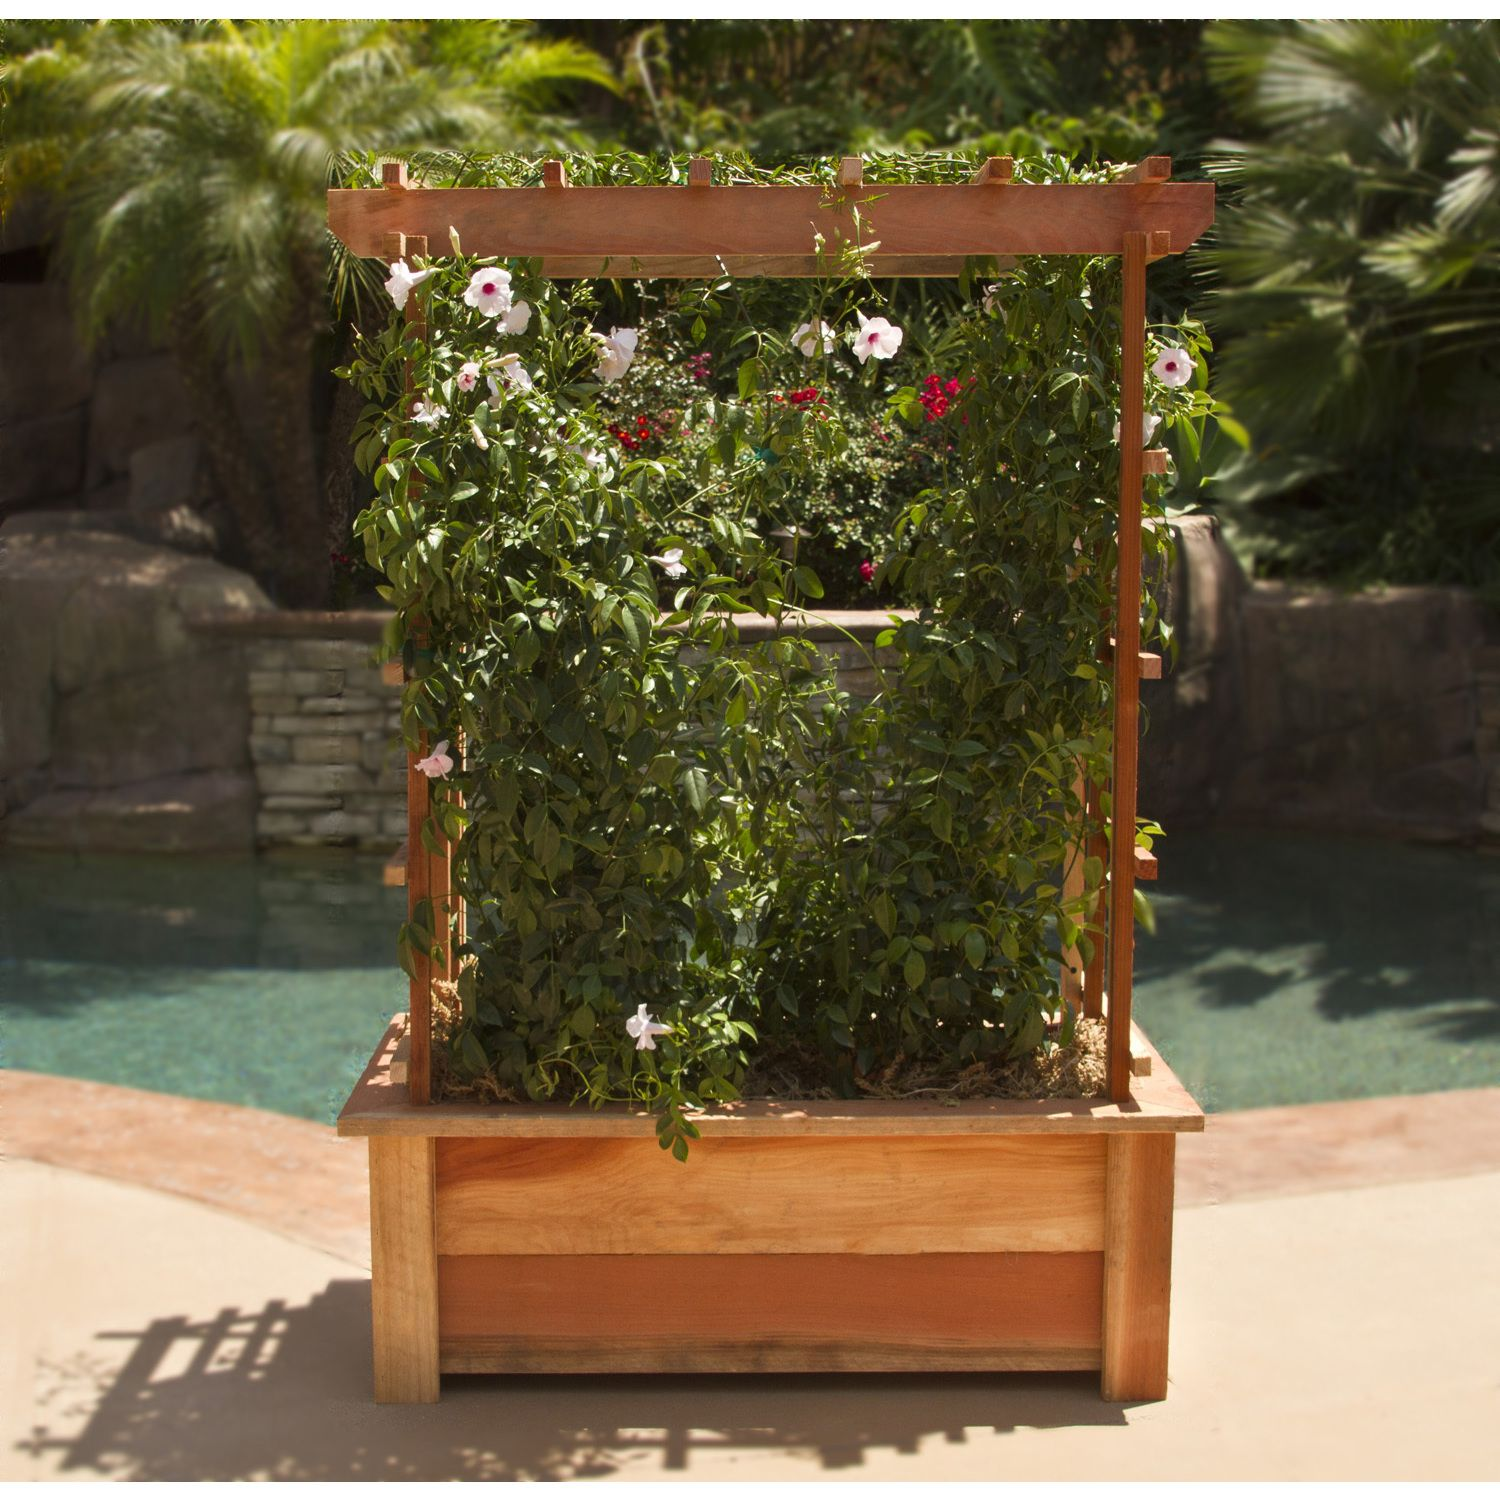 Large Redwood Planter Box For Tomatoes: Show Off Your Favorite Vine-based Plants Such As Ivy And